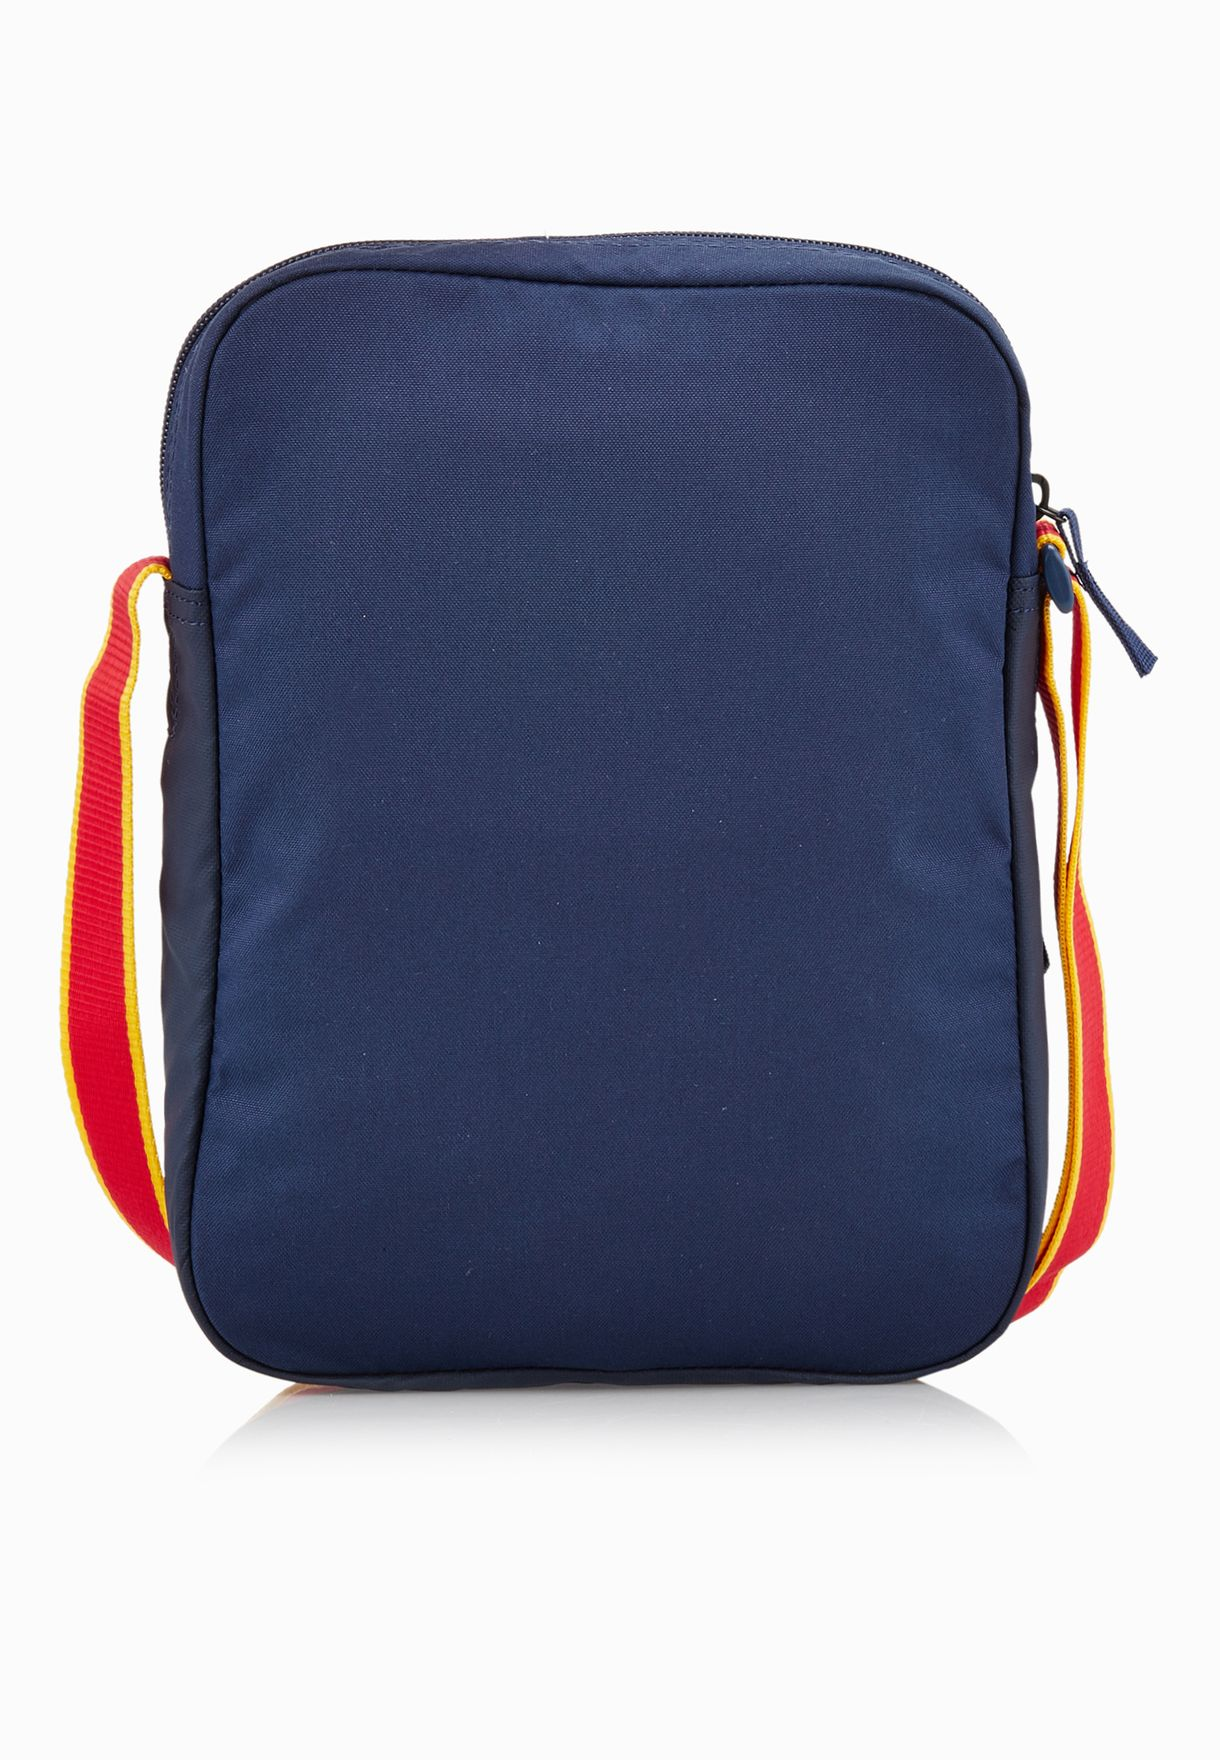 d4456a9ad03f Shop Nike navy Small FC Barcelona Messenger Bag BA5055-410 for Men ...